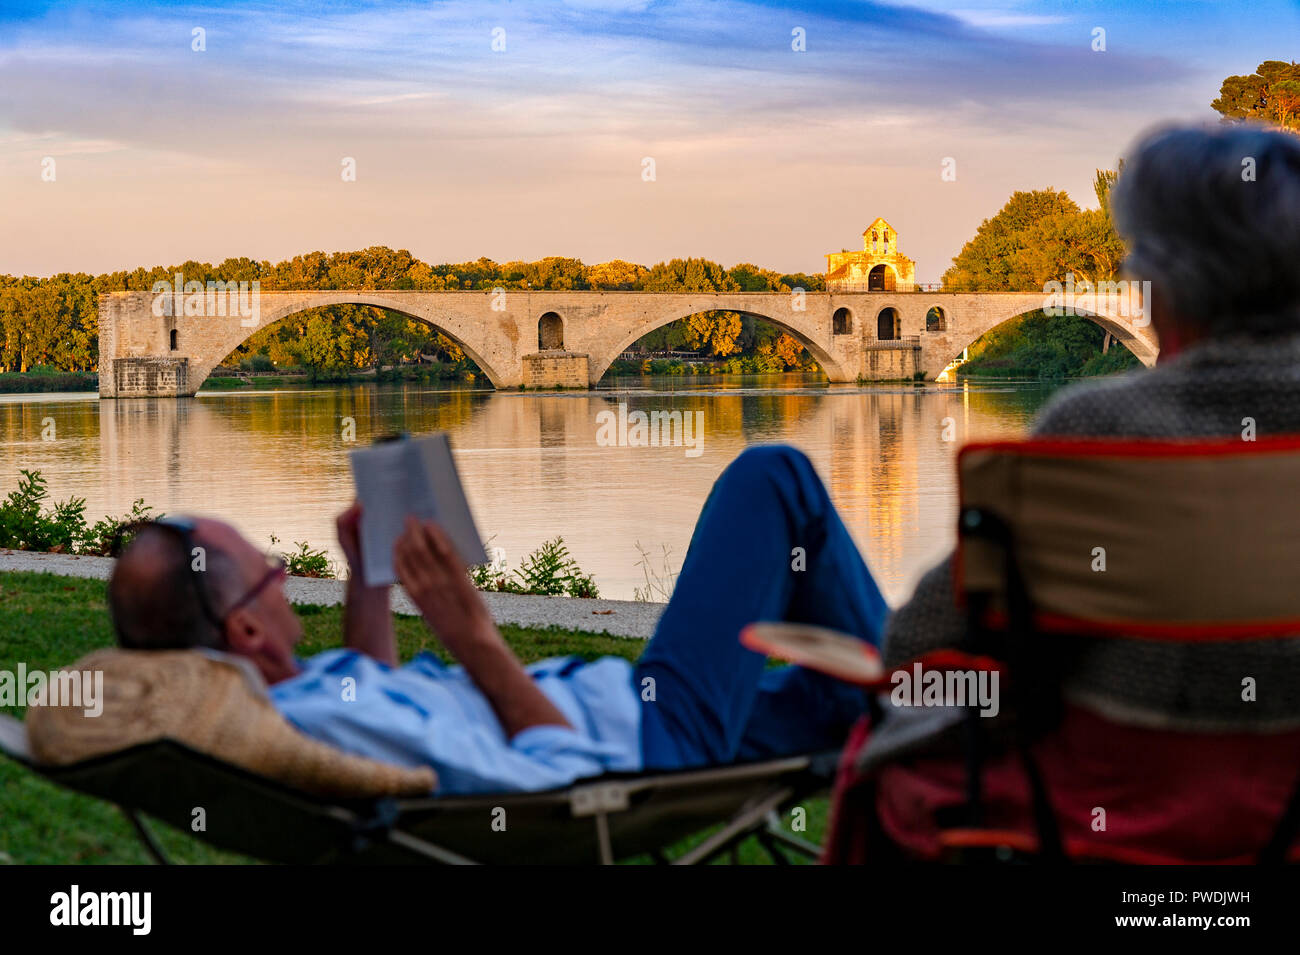 France. Vaucluse (84). Avignon. Tourists on the banks of the Rhone, in background Pont Saint-Bénézet, commonly called Pont d'Avignon - Stock Image